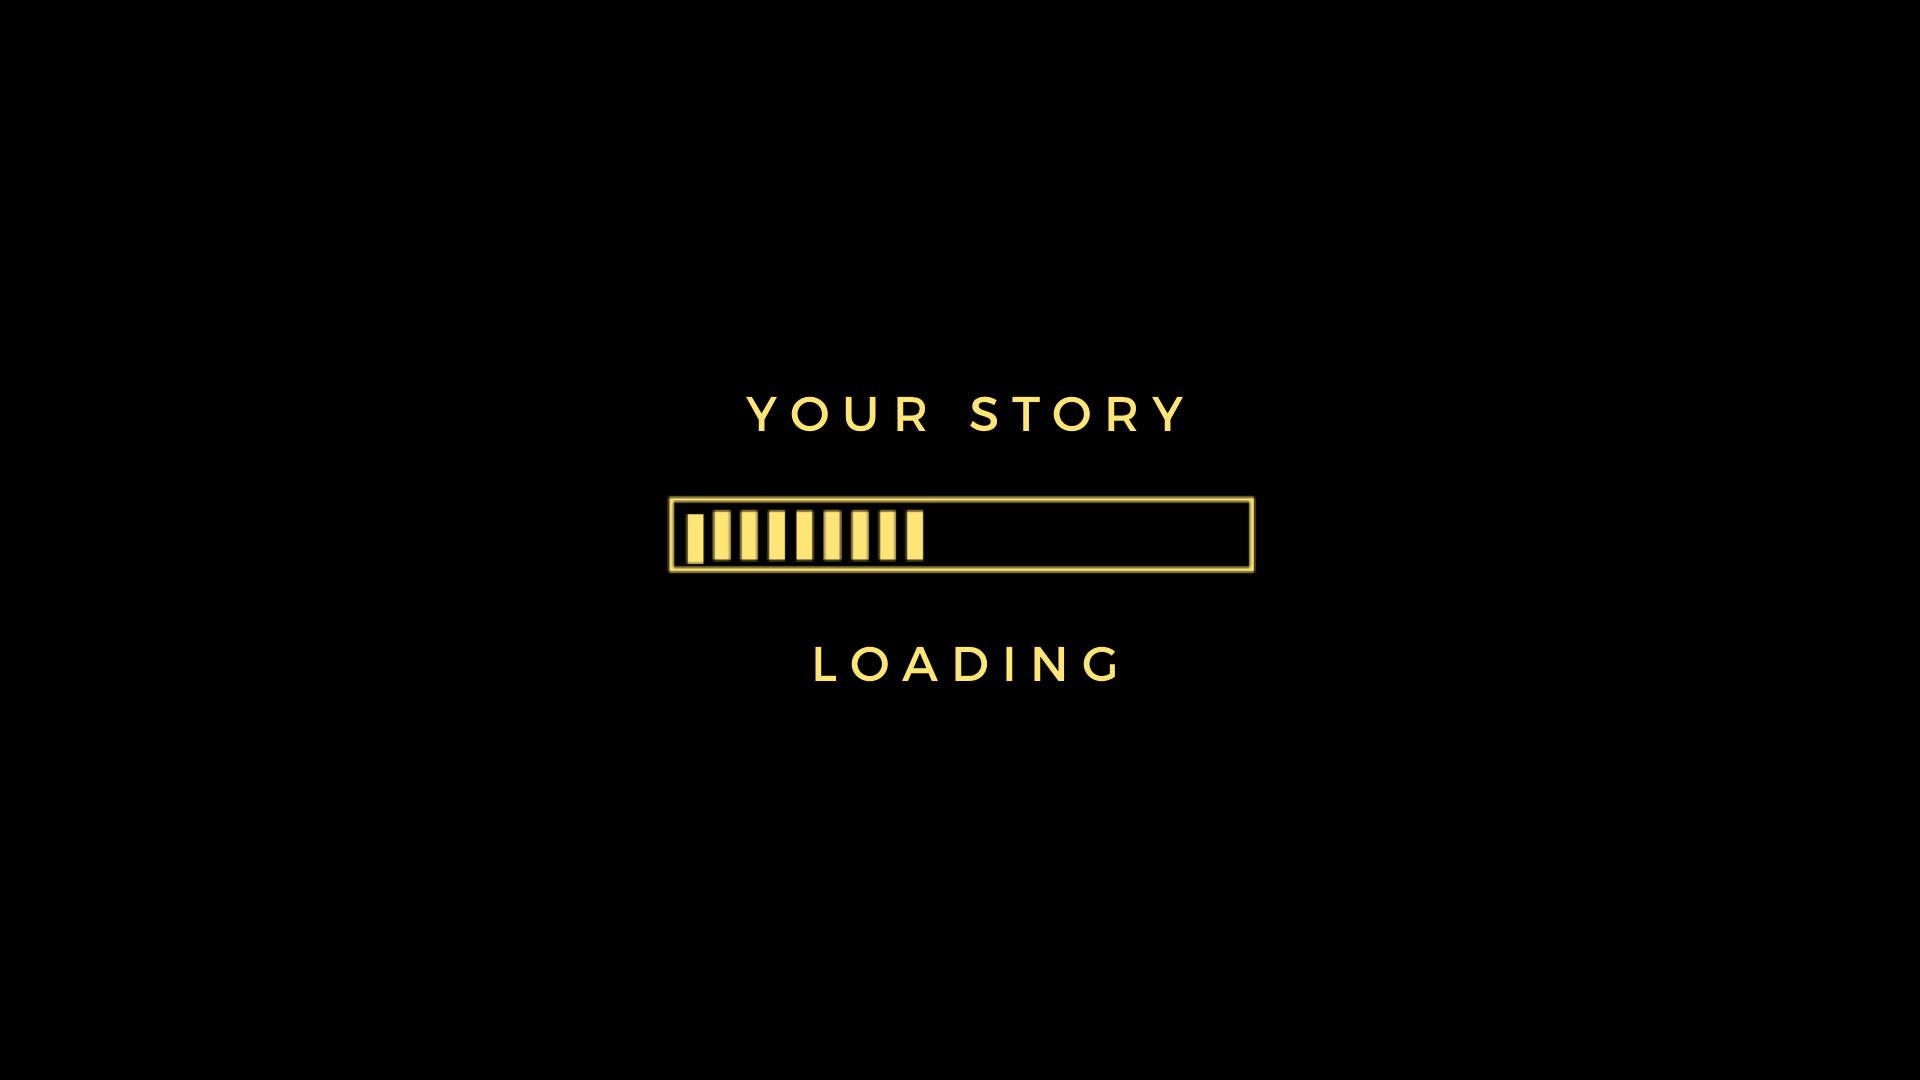 Your story loading computer screen